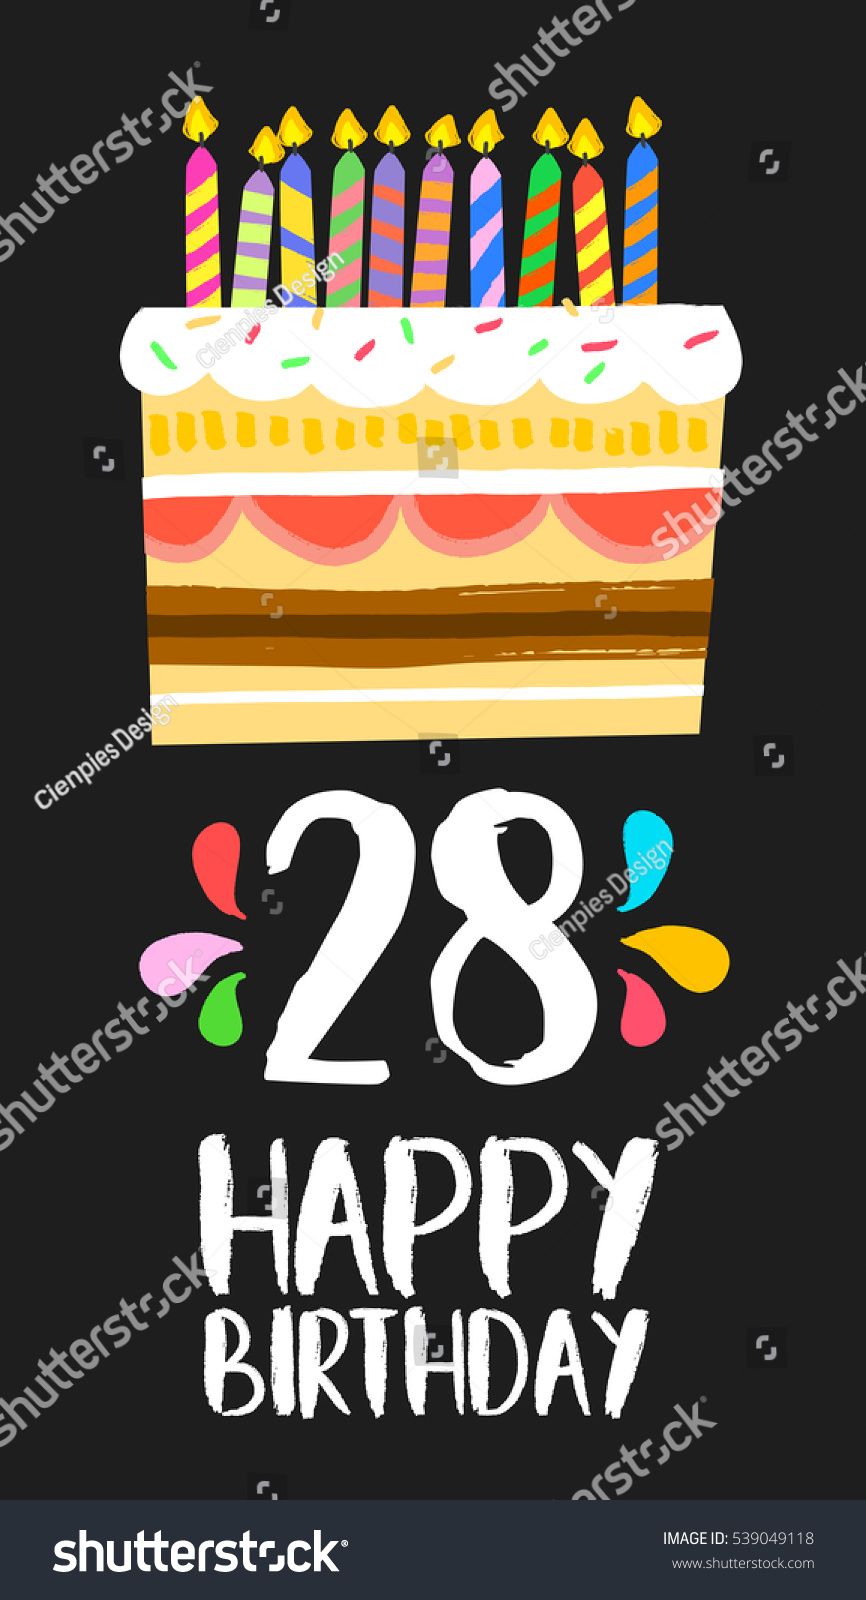 Happy Birthday Number 28 Greeting Card For Twenty Eight Years In Fun Art Style With